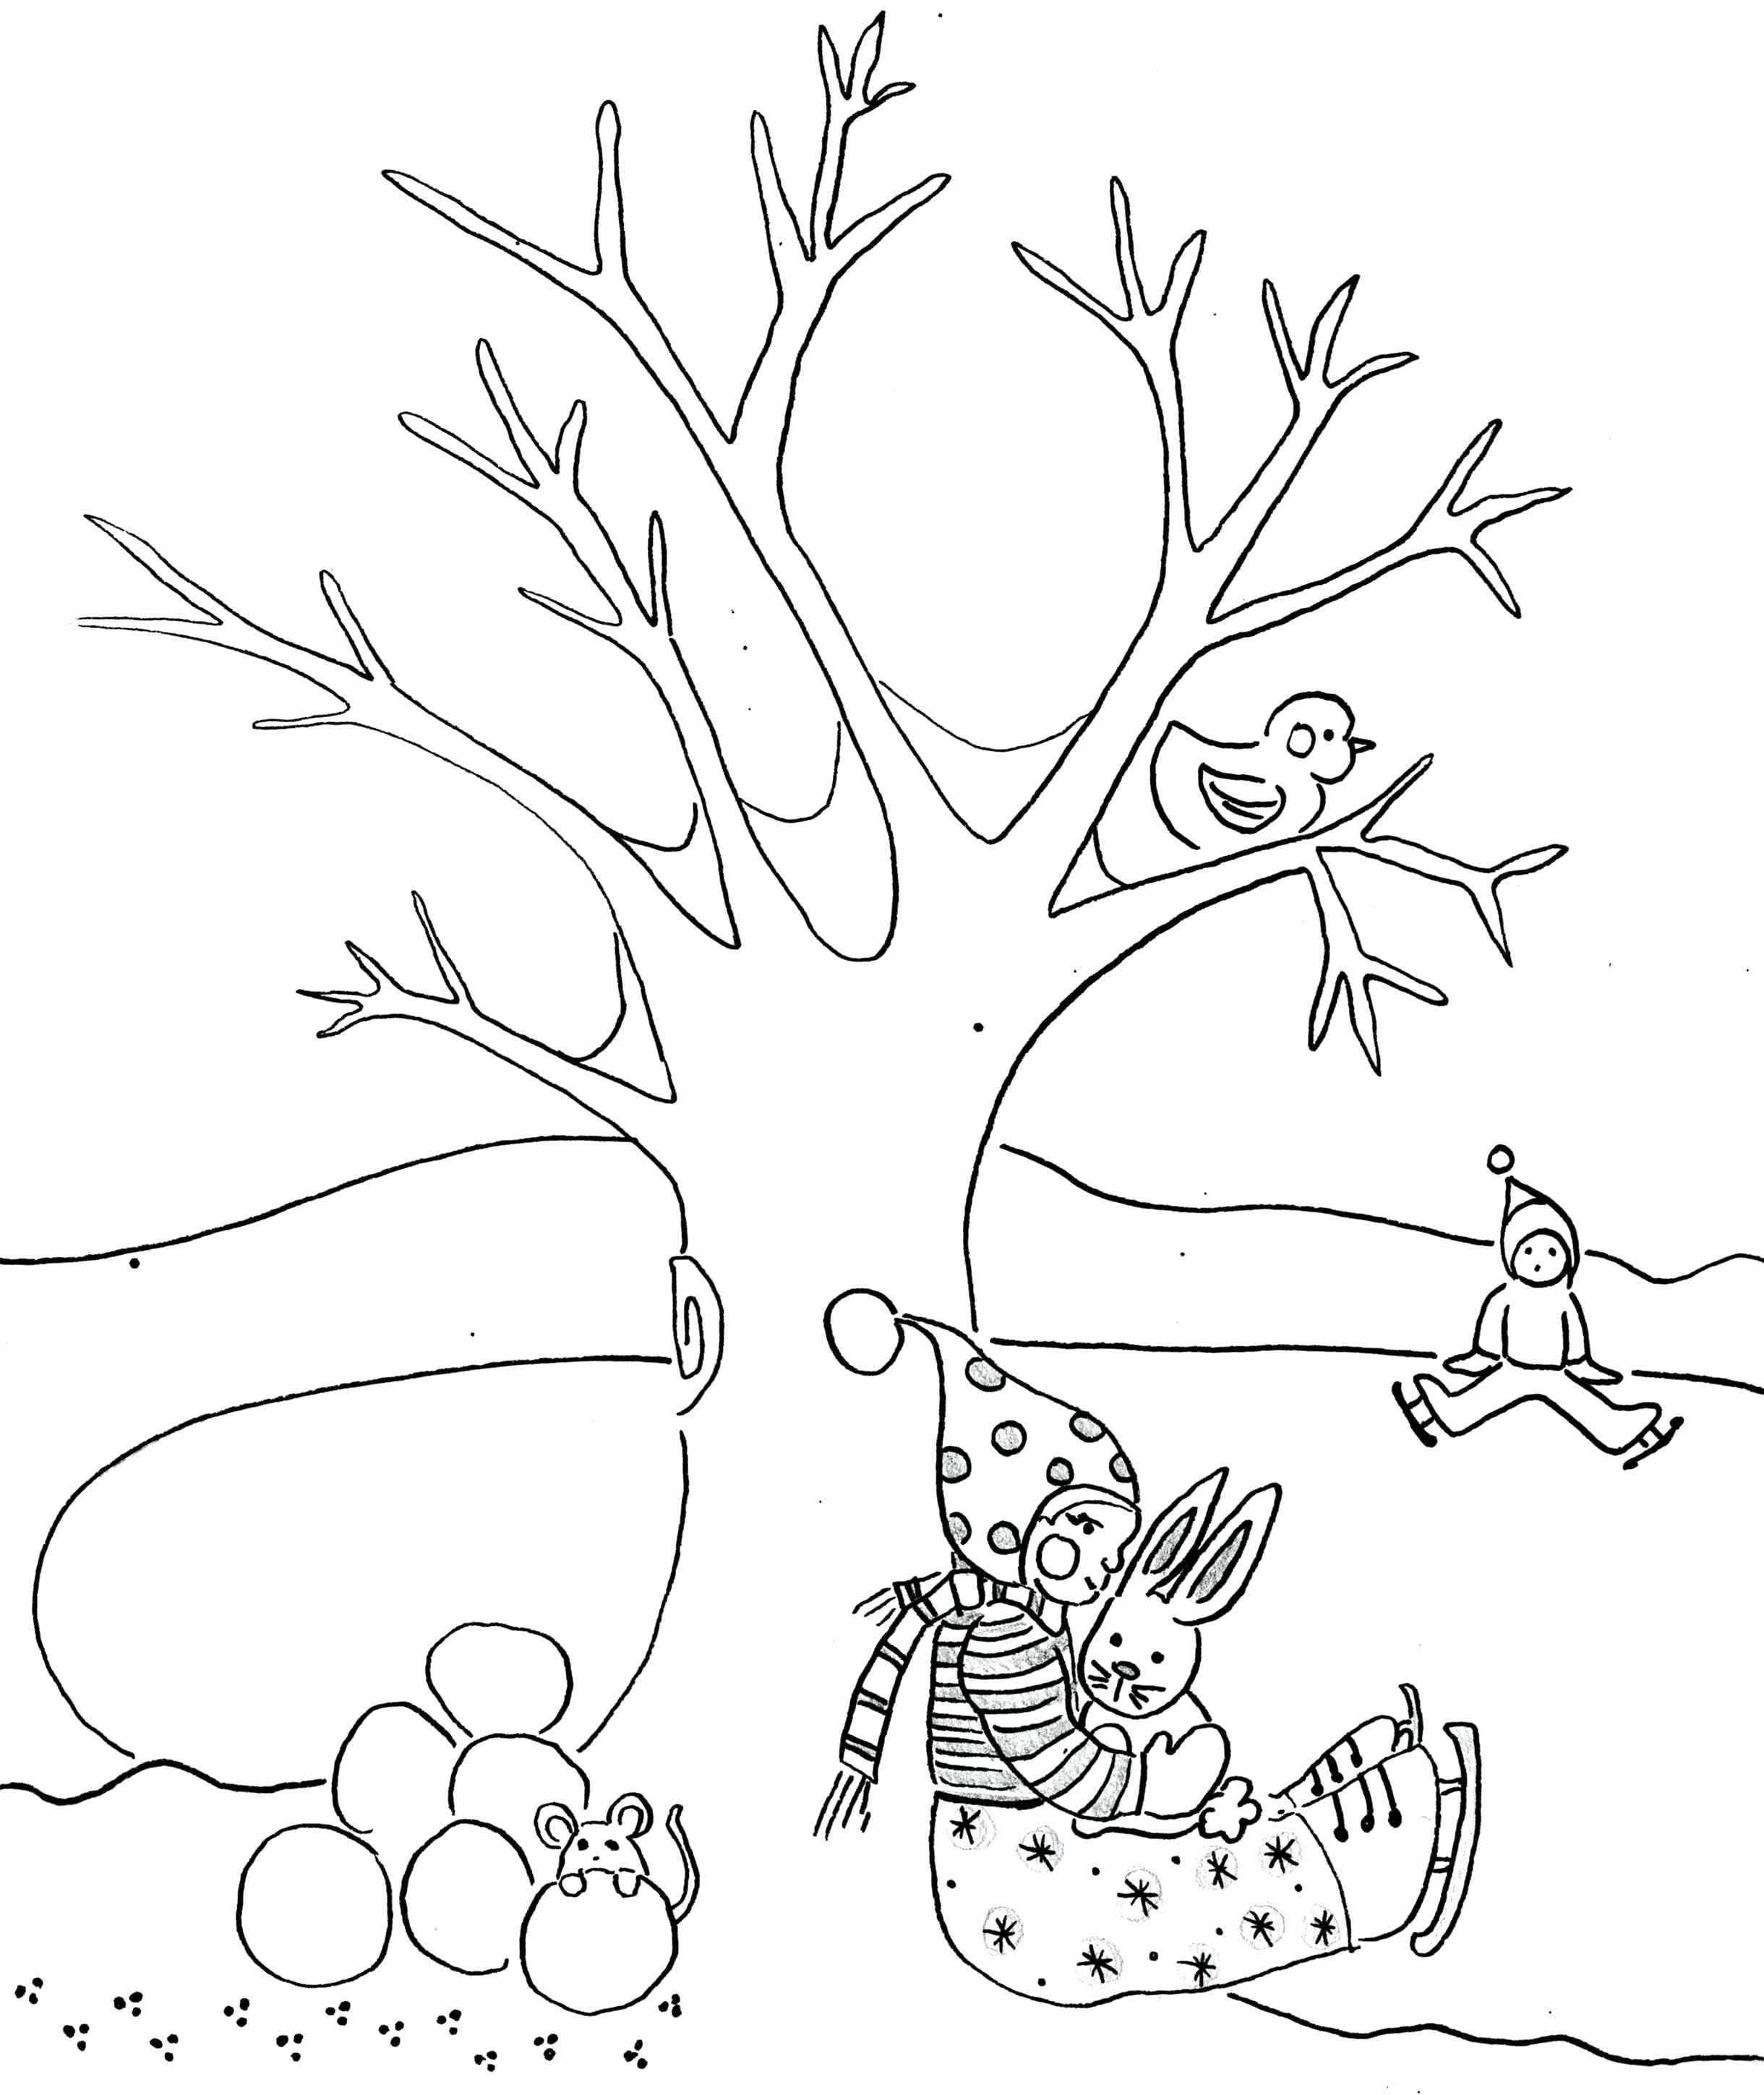 Tree Trunk Coloring Page Best Of Tree Trunk Coloring Page At Getcolorings Tree Coloring Page Coloring Pages Winter Christmas Tree Coloring Page